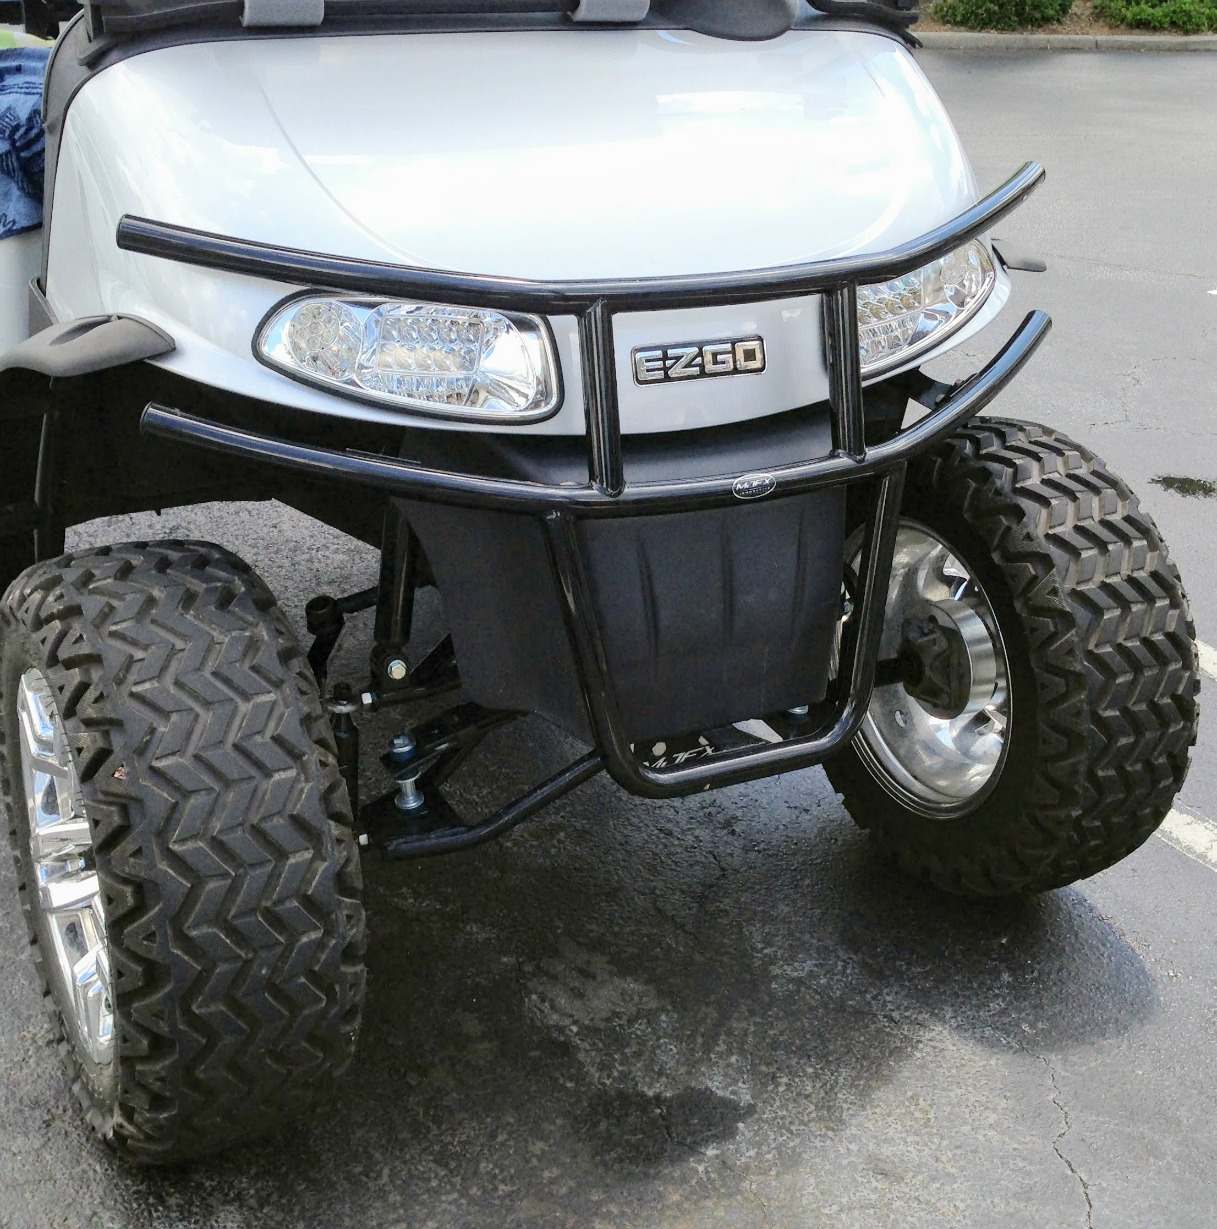 hight resolution of this golf cart make is a durable and high performance vehicle ez go is one of the top three manufacturers which means it is easy to find and gets parts as